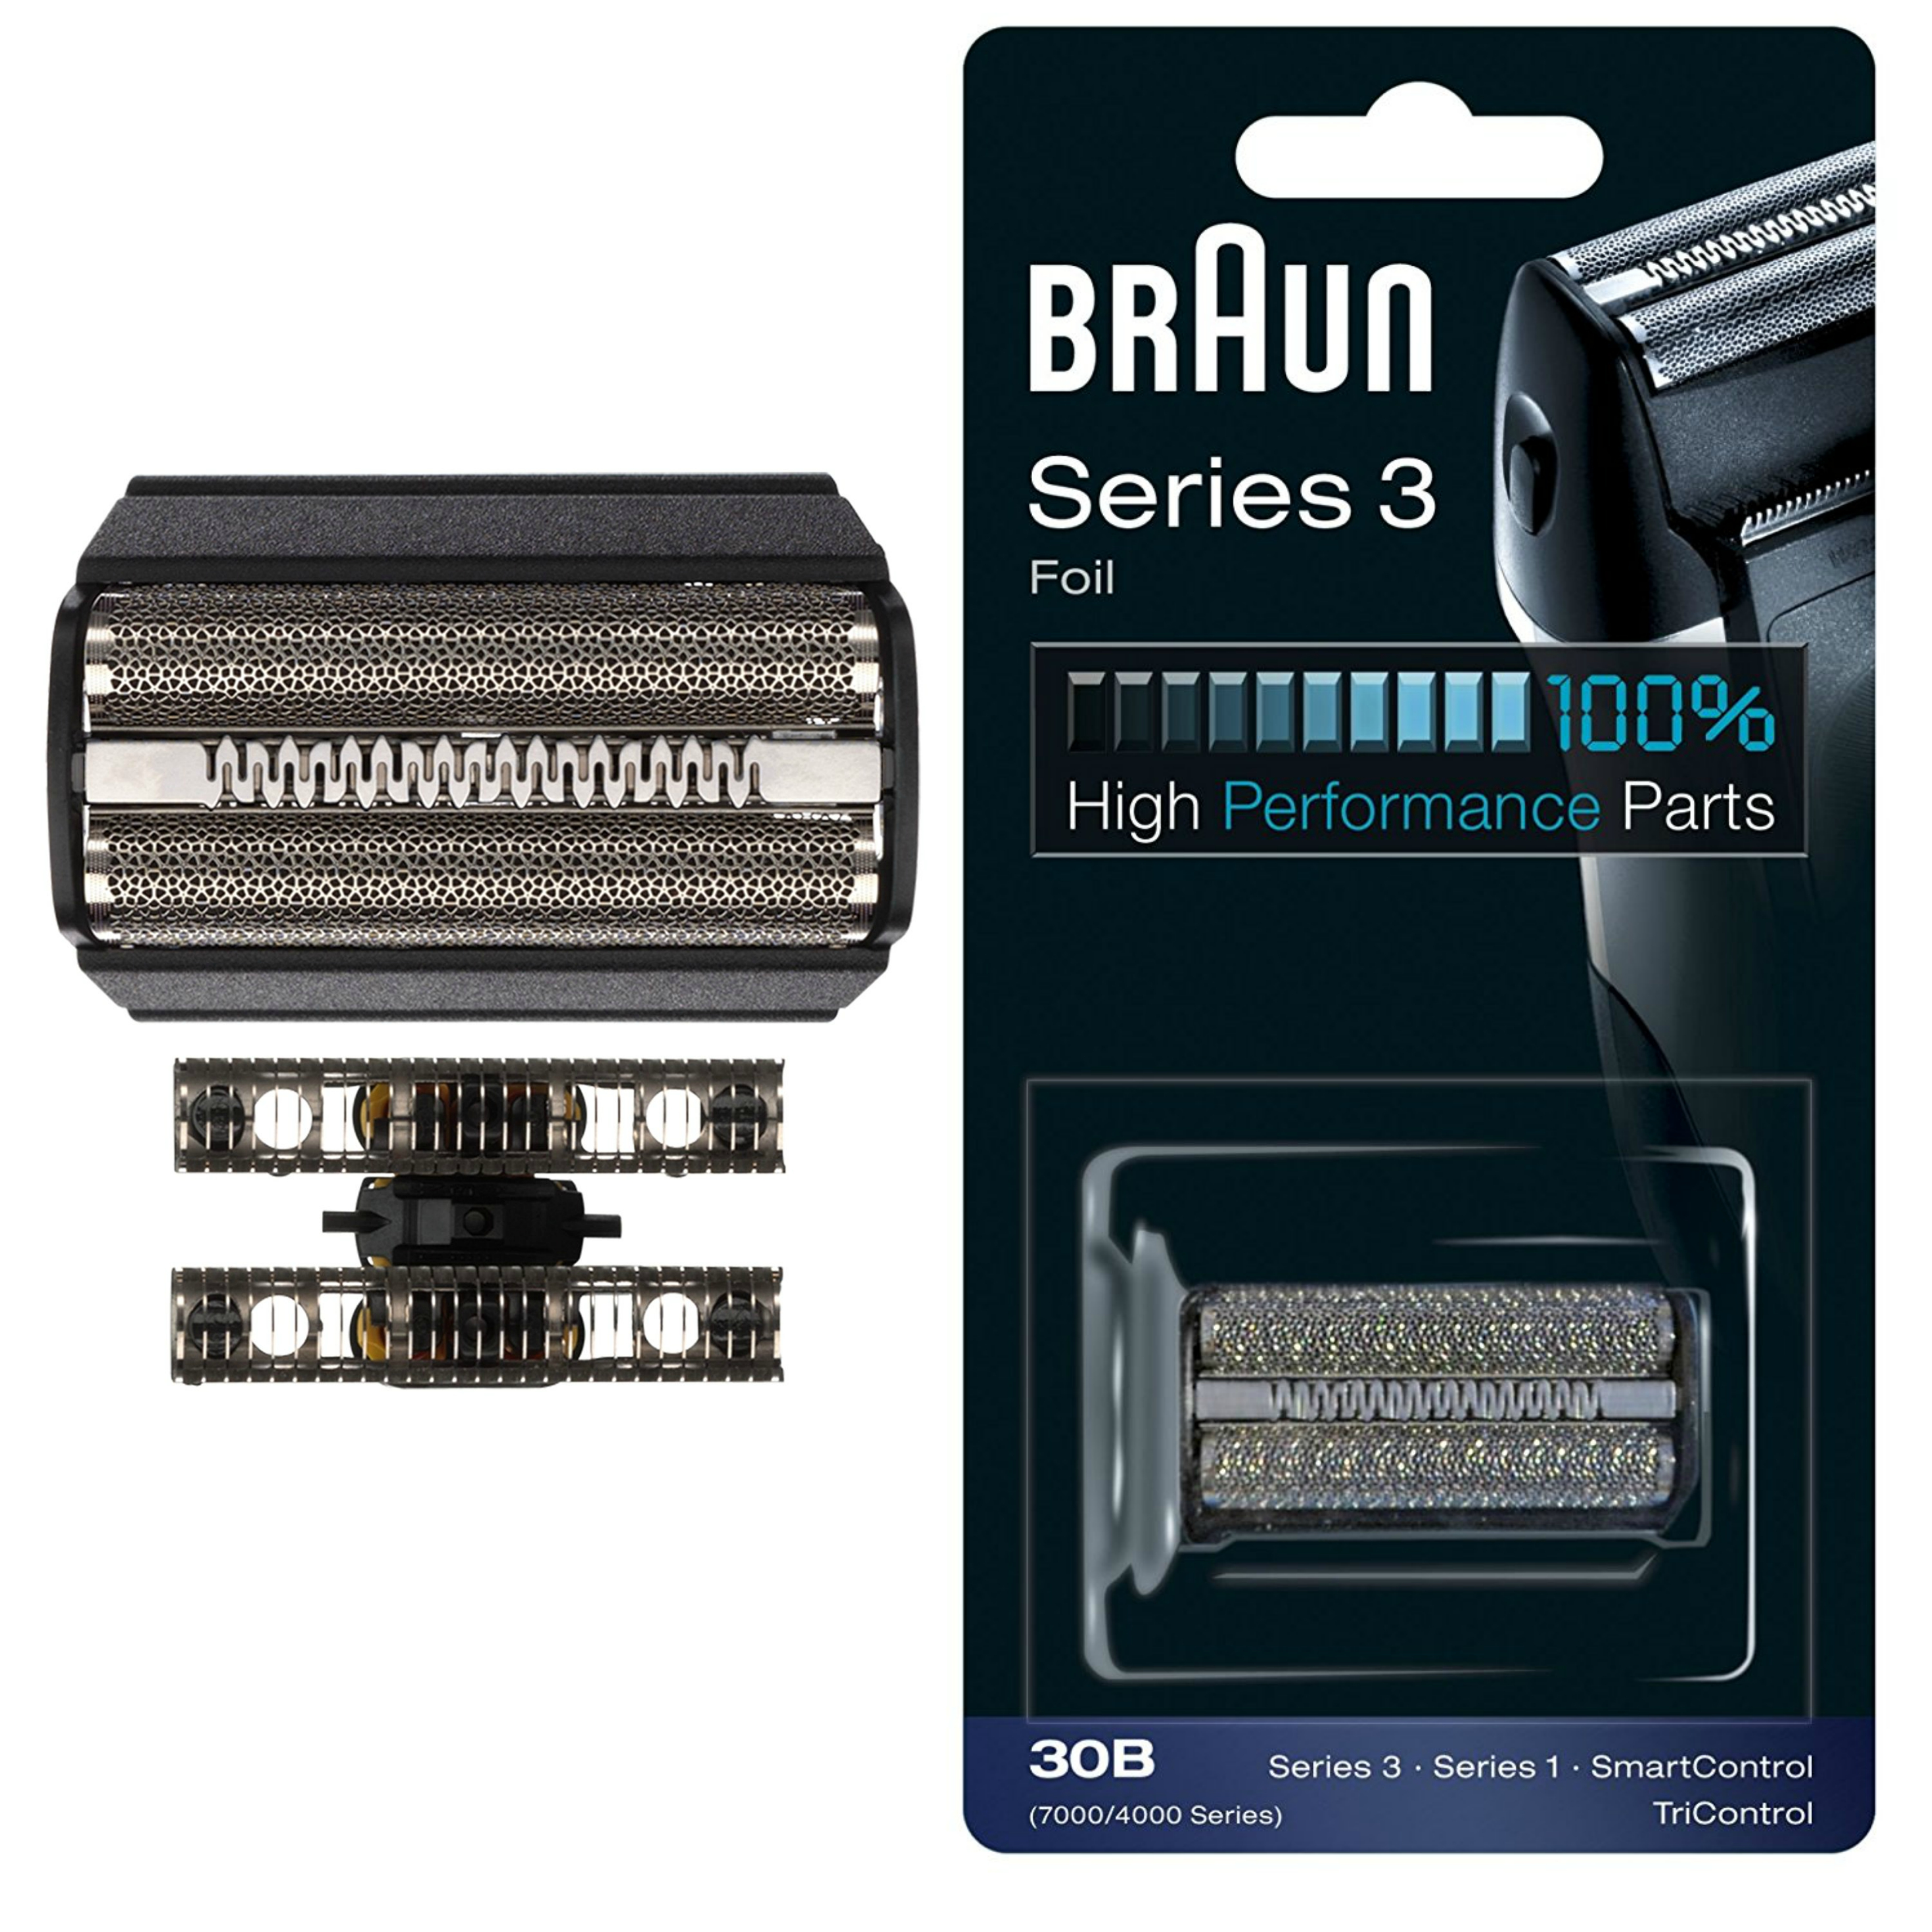 Braun 30B Replacement Black Foil|Series 3|Series 1|SmartControl and TriControl|